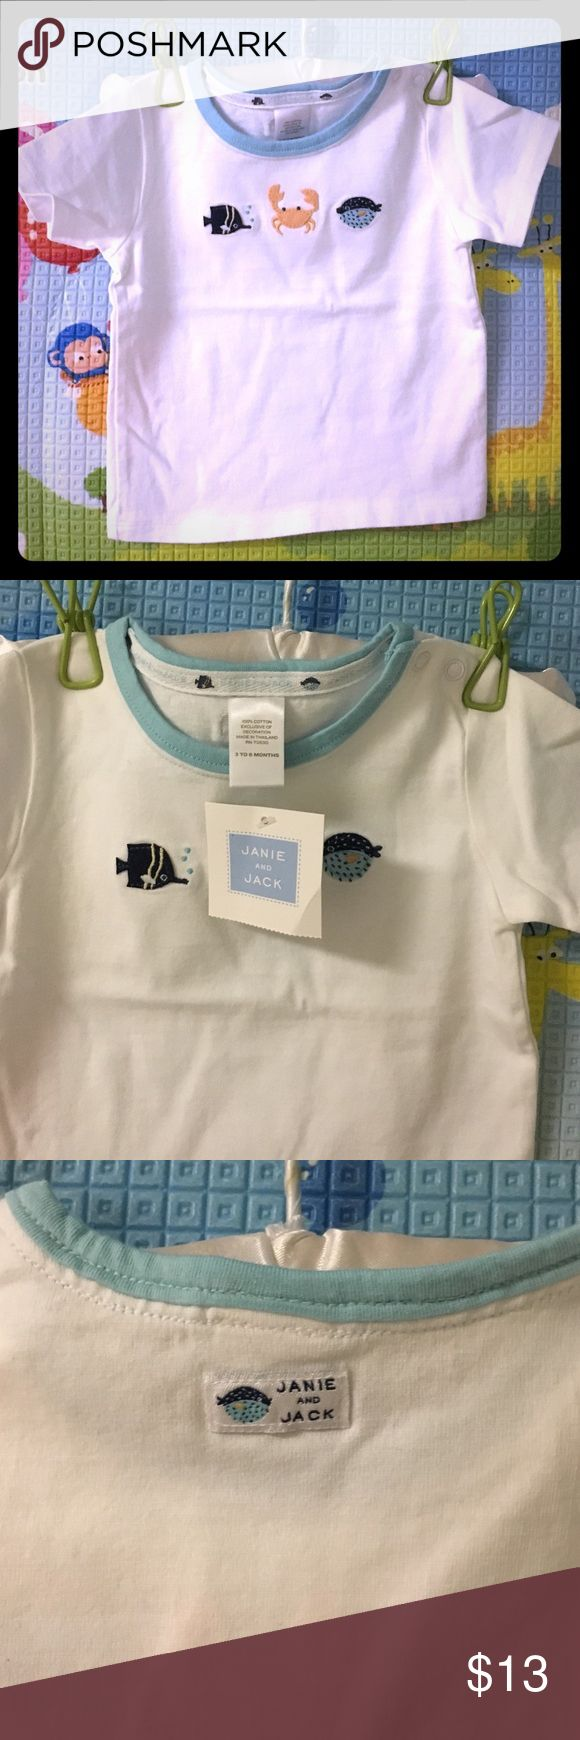 NWT Janie and Jack nautical boys t-shirt 3-6M NWT Janie and Jack nautical boys t-shirt 3-6M. This t-shirt was bought with the nautical blue plaid shorts, if interested in both I will bundle as a set. Janie and Jack Shirts & Tops Tees - Short Sleeve